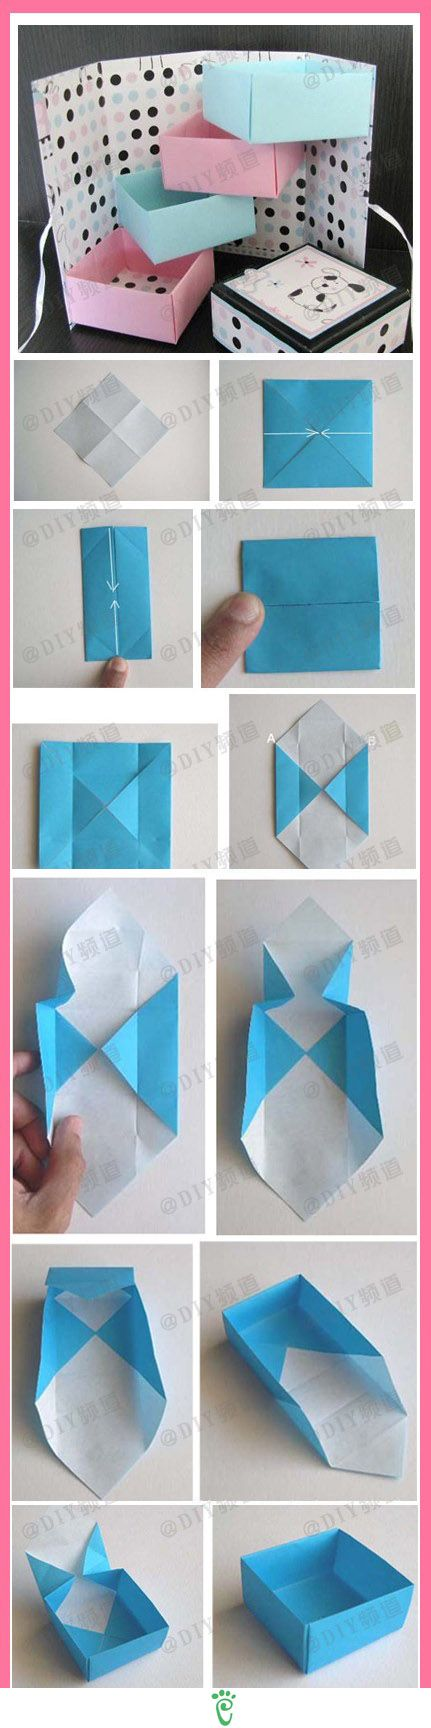 DIY Paper Box Pictures, Photos, and Images for Facebook, Tumblr ...